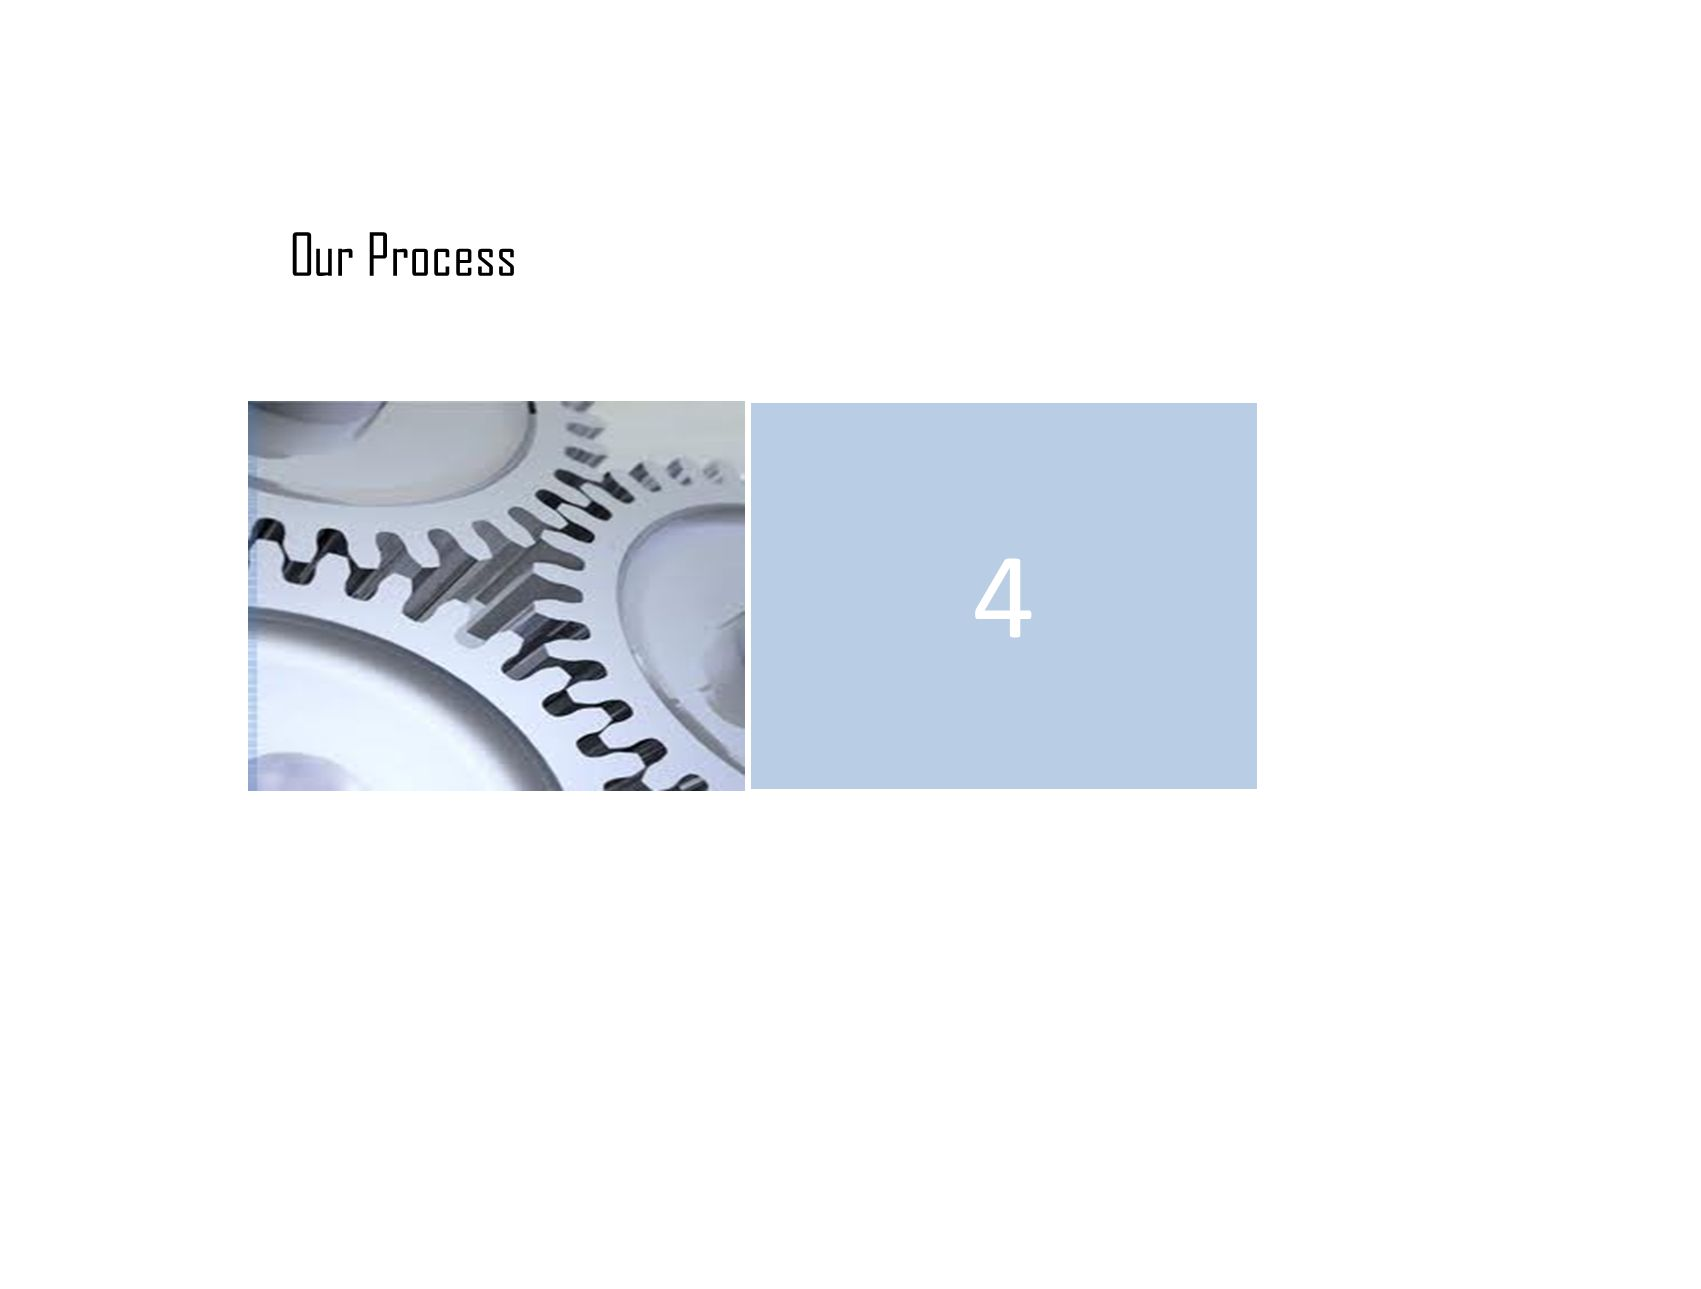 Our Process 4